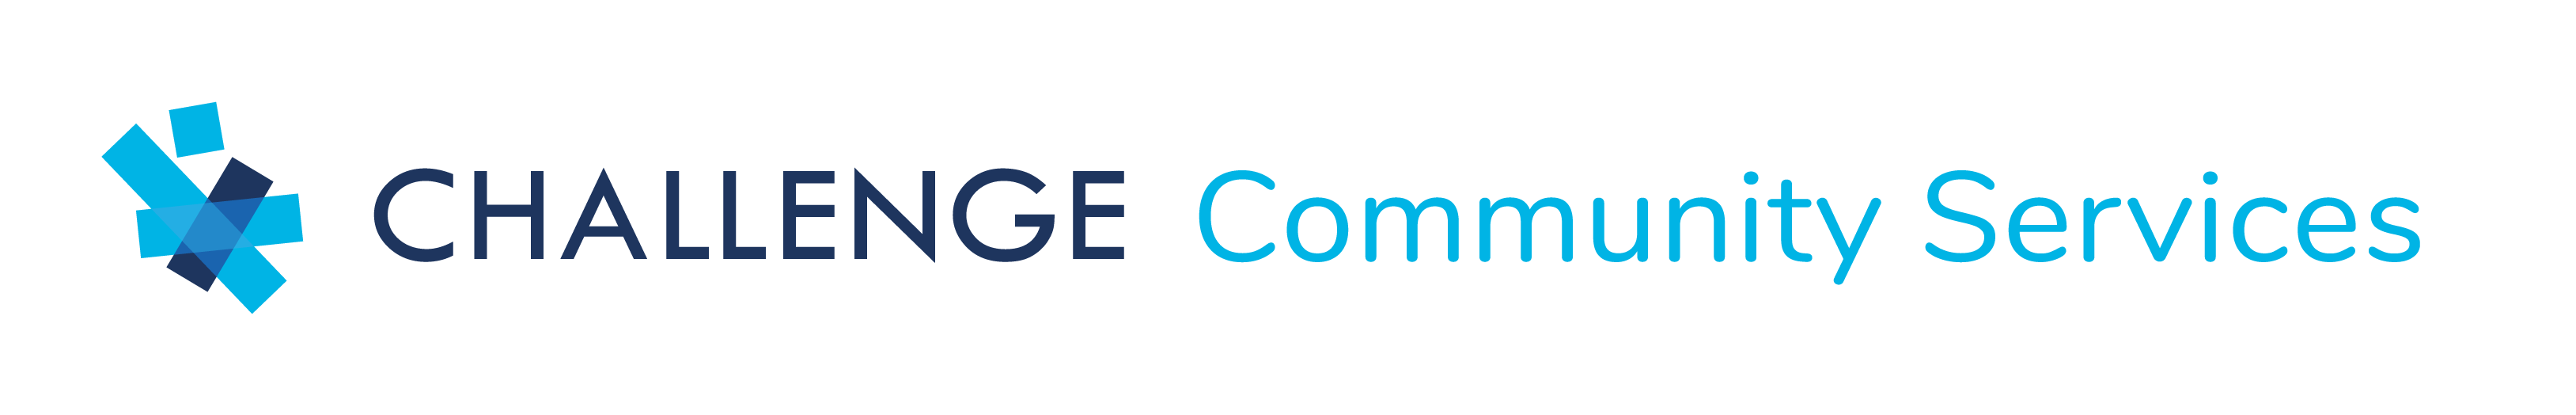 challenge-corporate-logo-horizontal-one-line.png